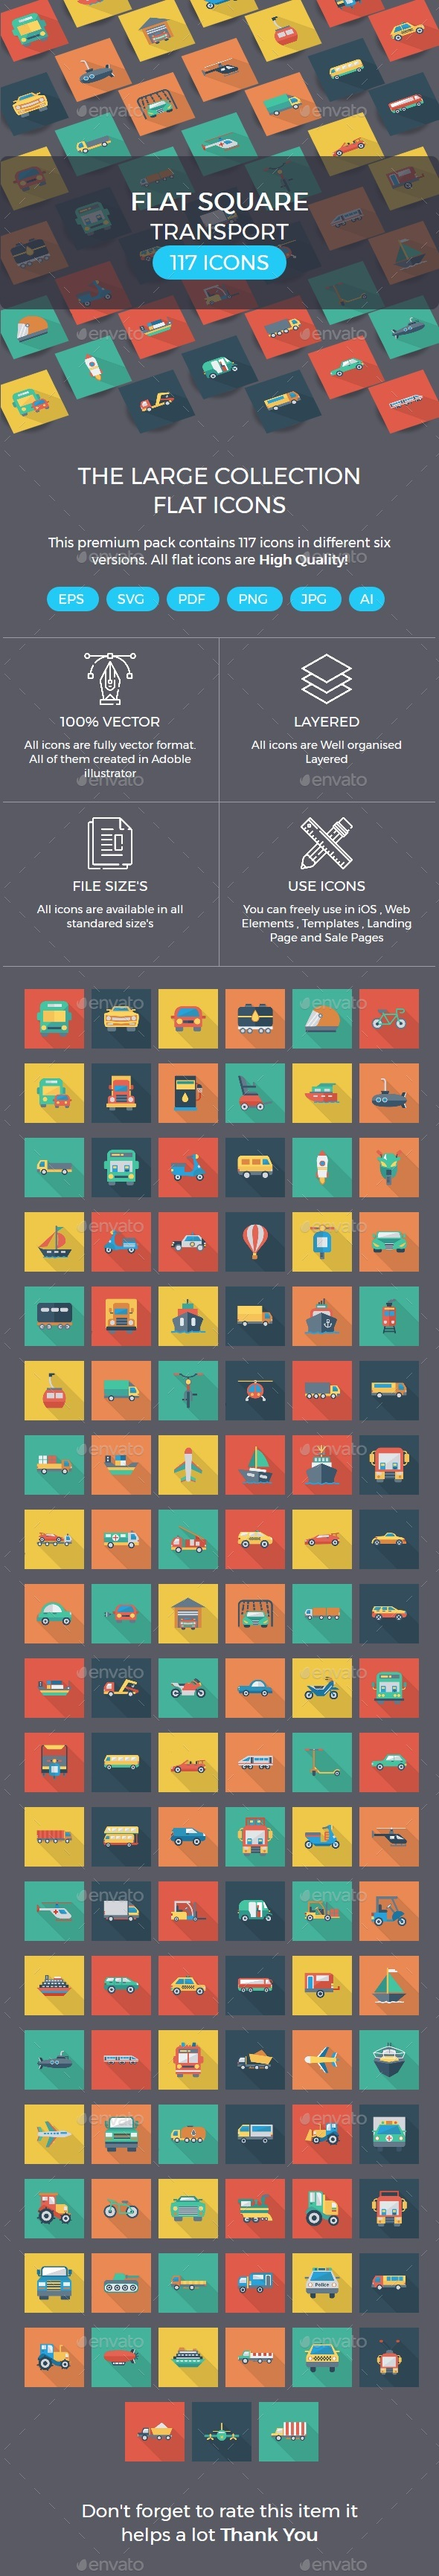 Transport Flat Square Shadow icons - Business Icons